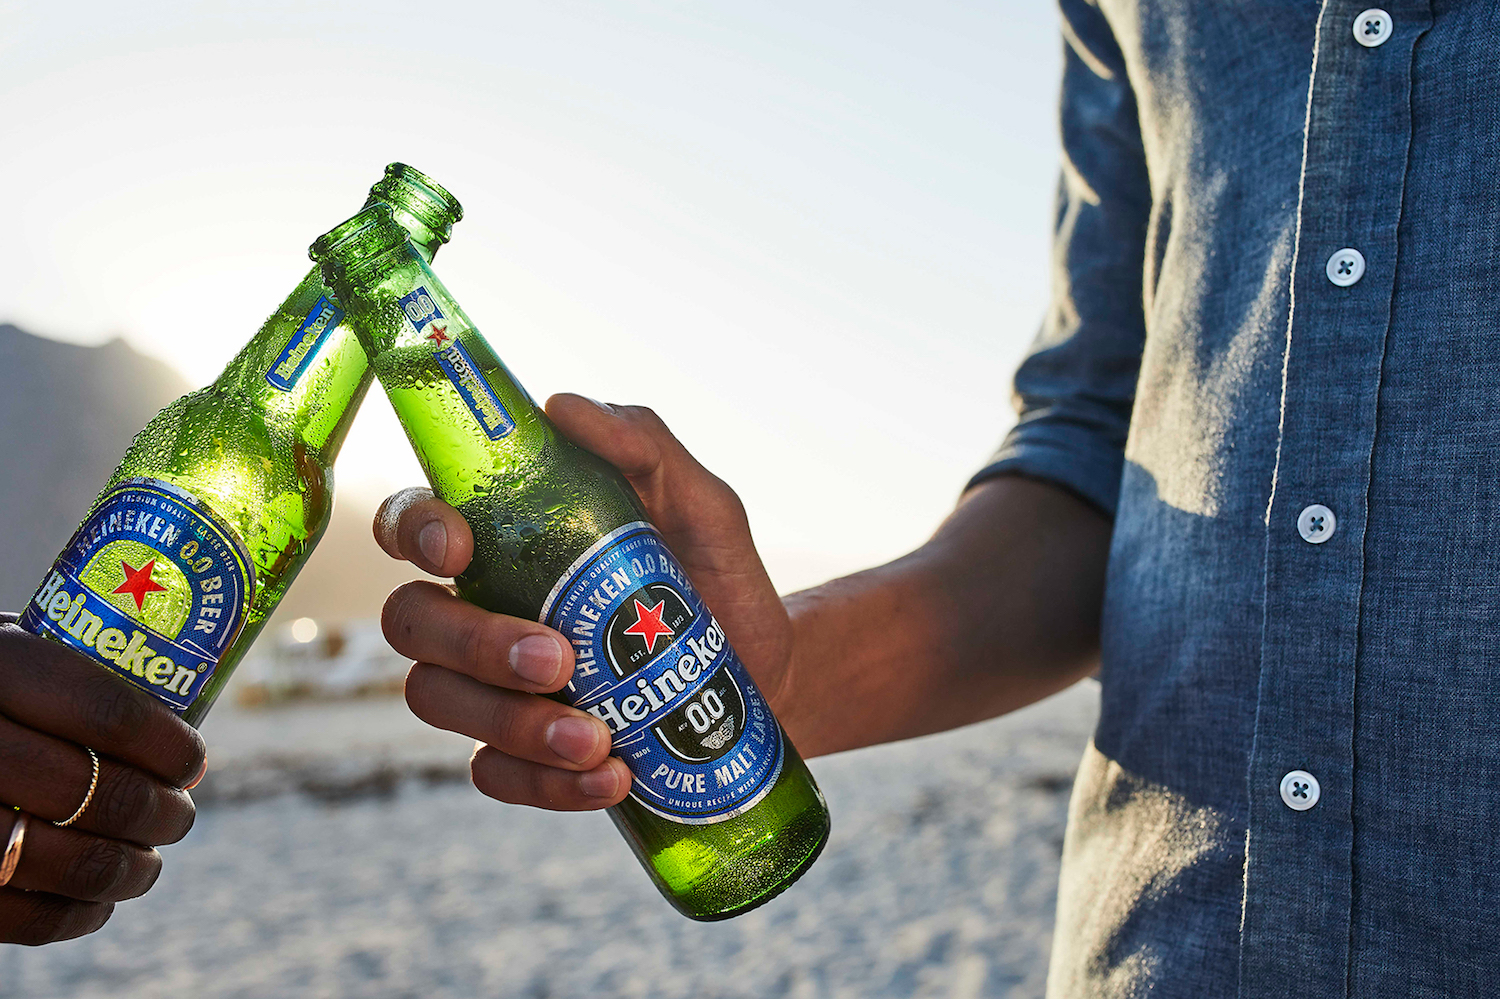 Enjoy a cold one post-workout—without worrying about the effects of alcohol.